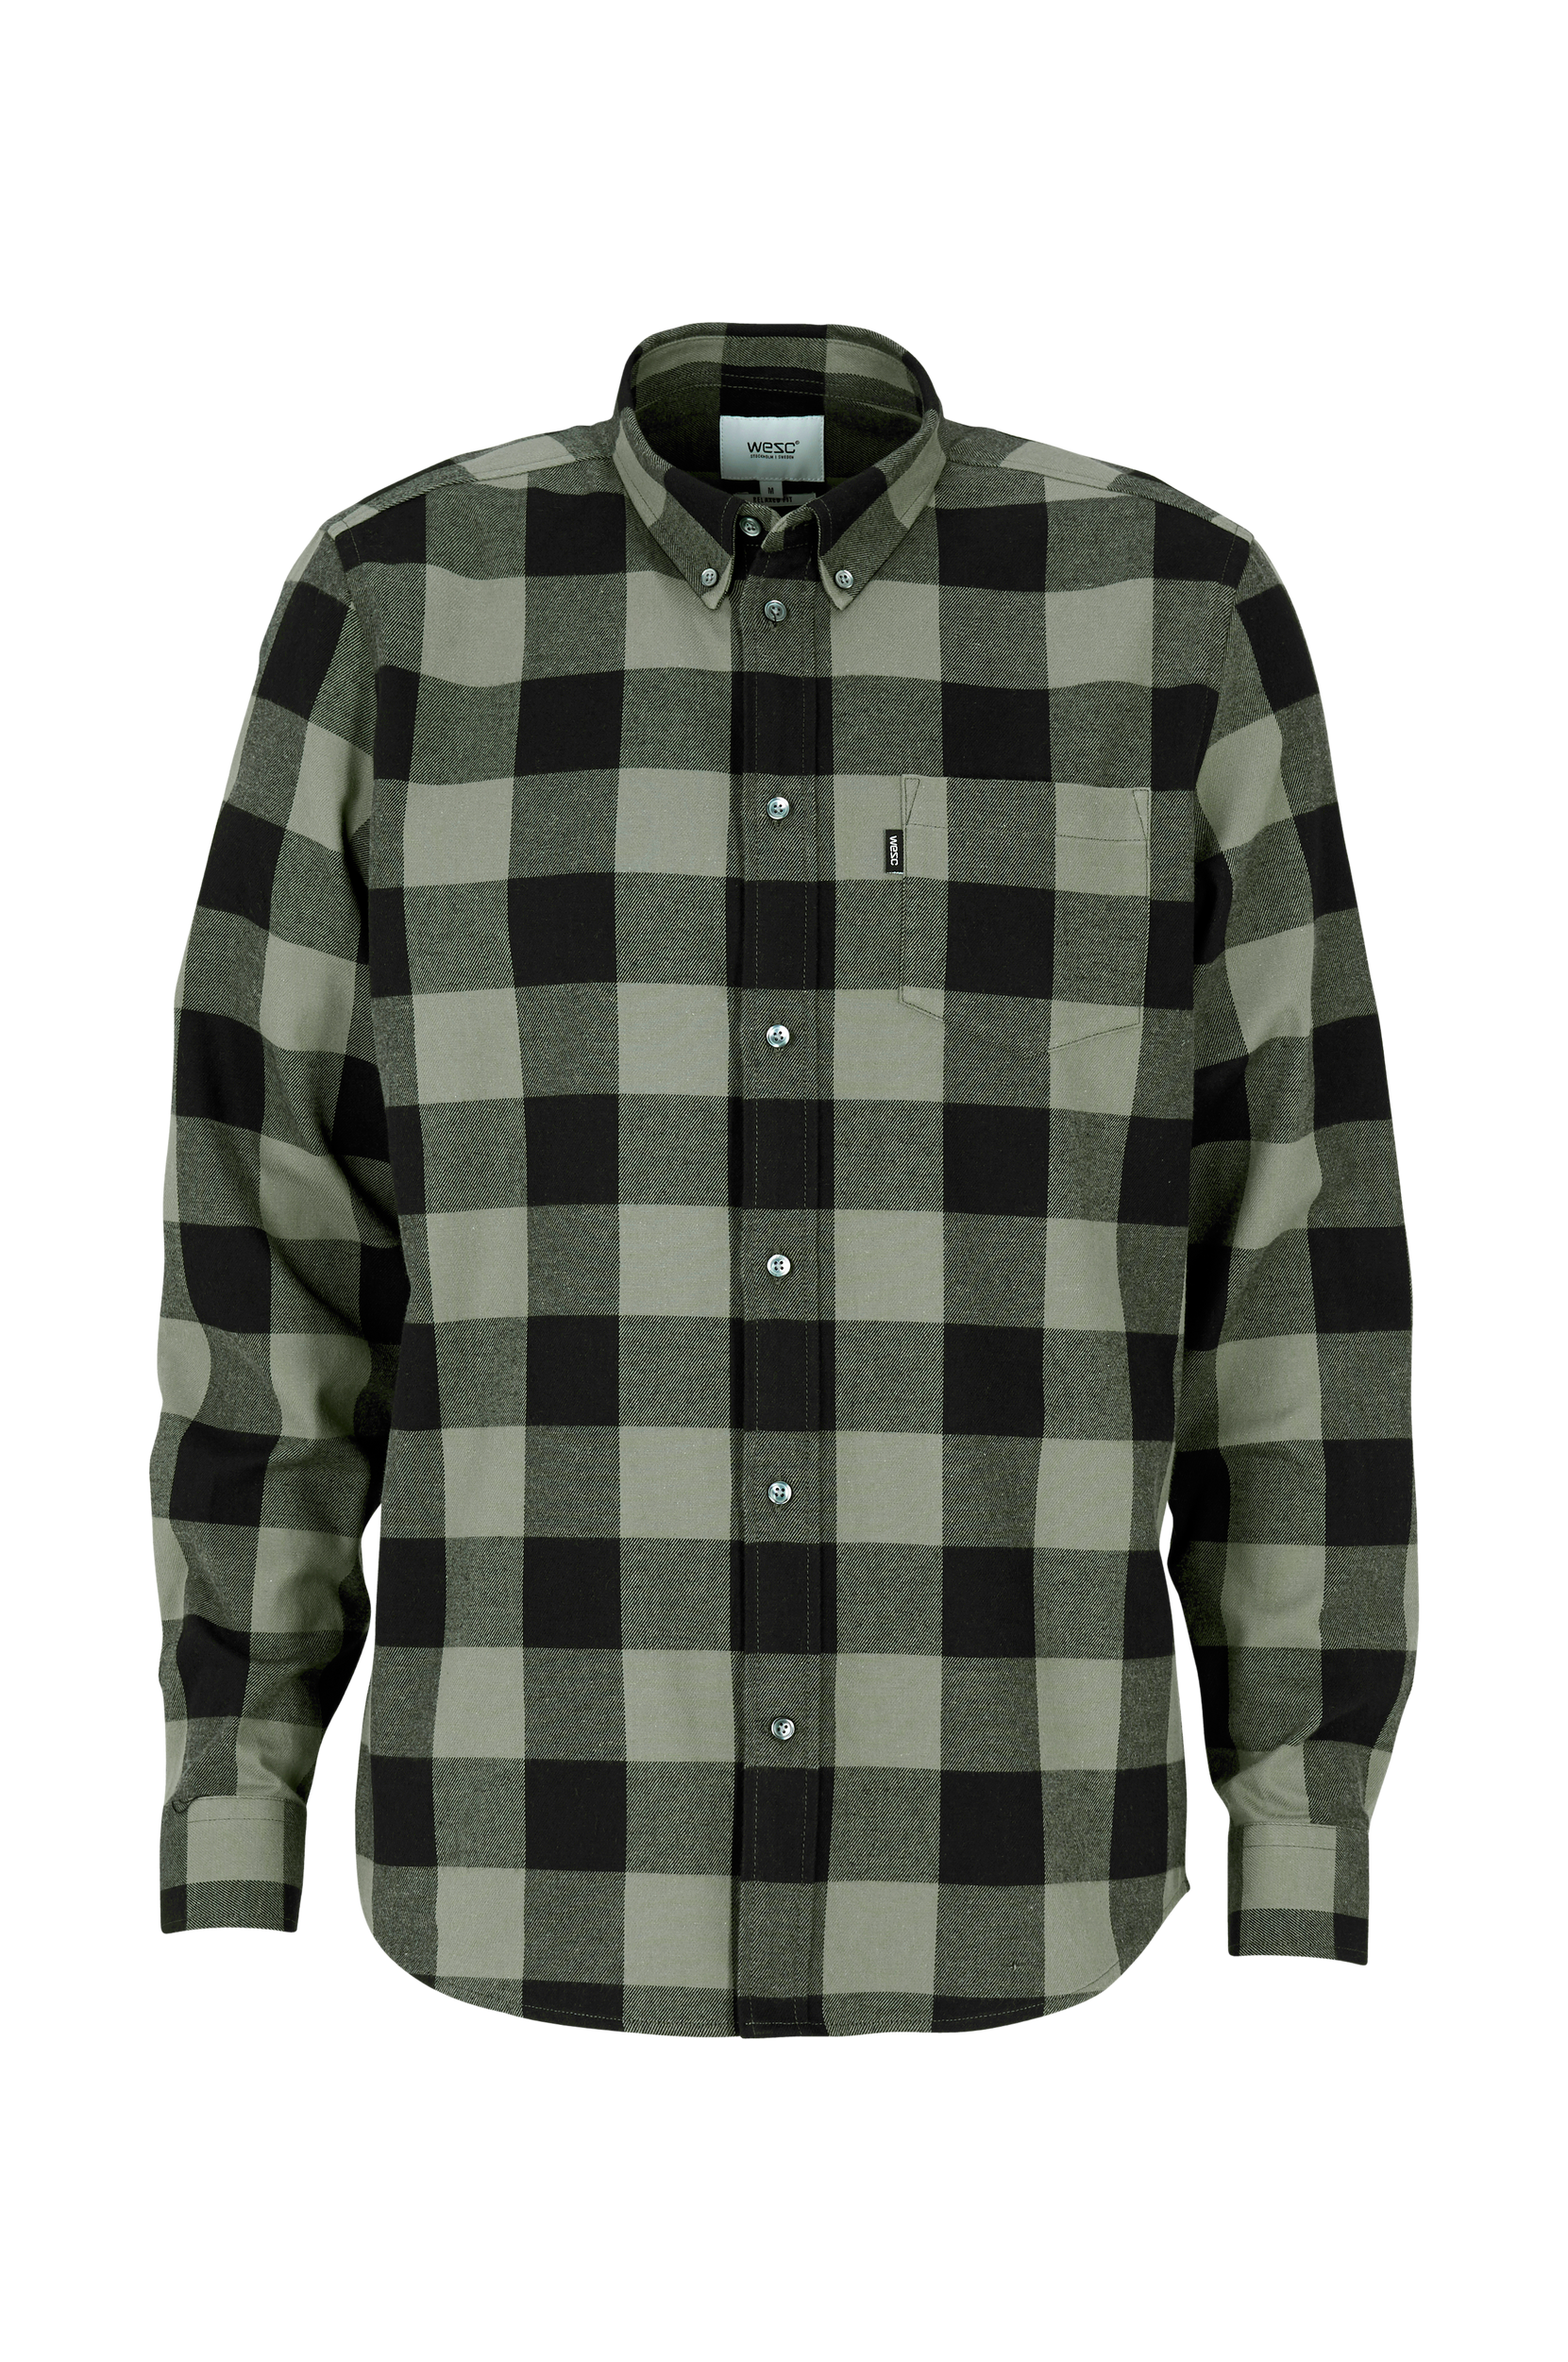 Skjorta Men's L/S Shirt Relaxed Fit thumbnail